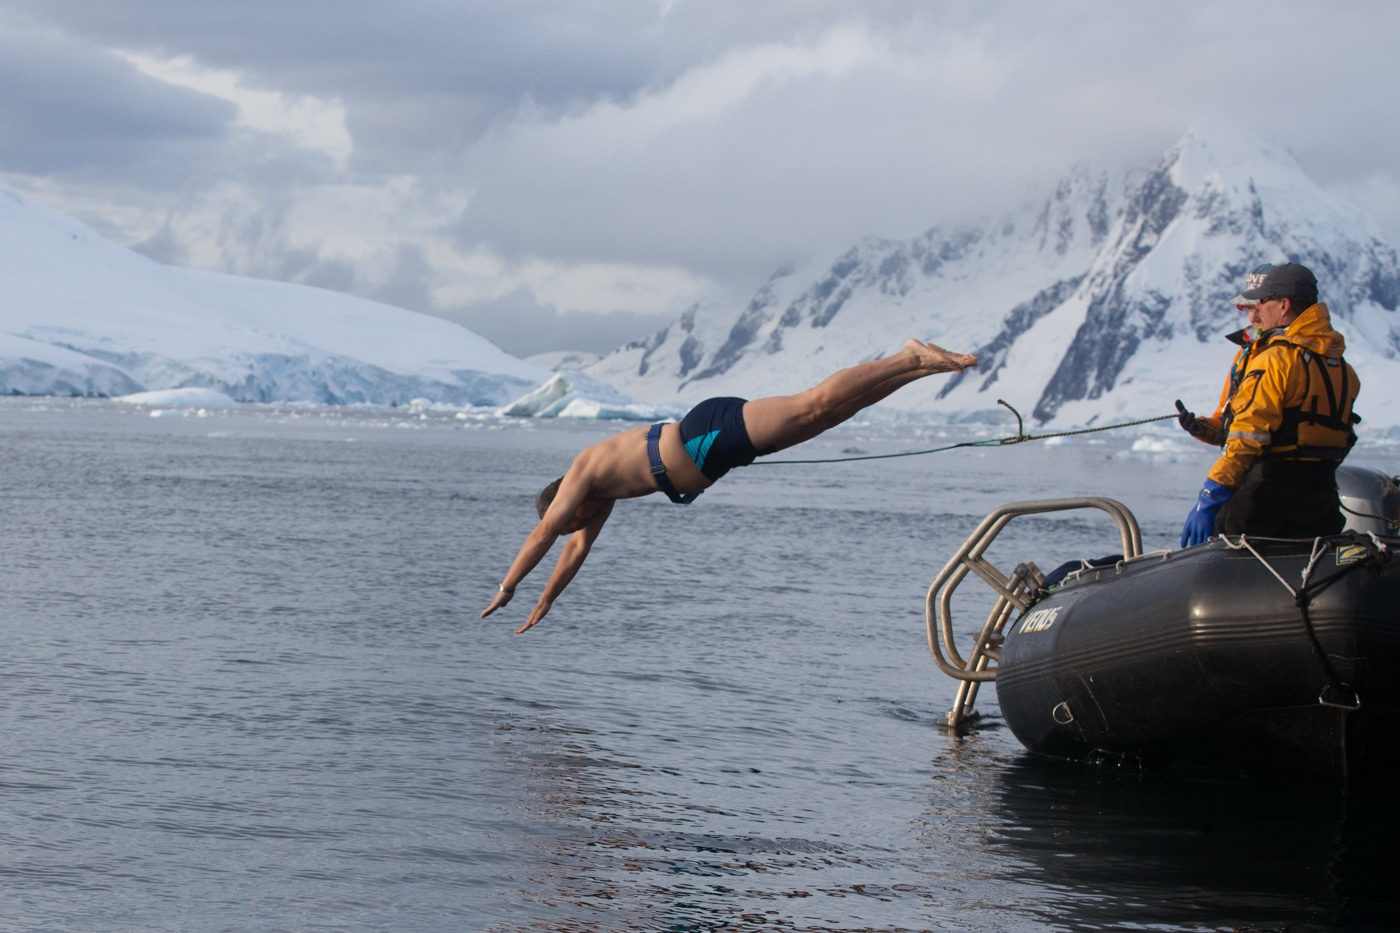 The Polar Plunge is a rite of passage many passengers take part in on Quark's small ship expeditions to the polar regions!